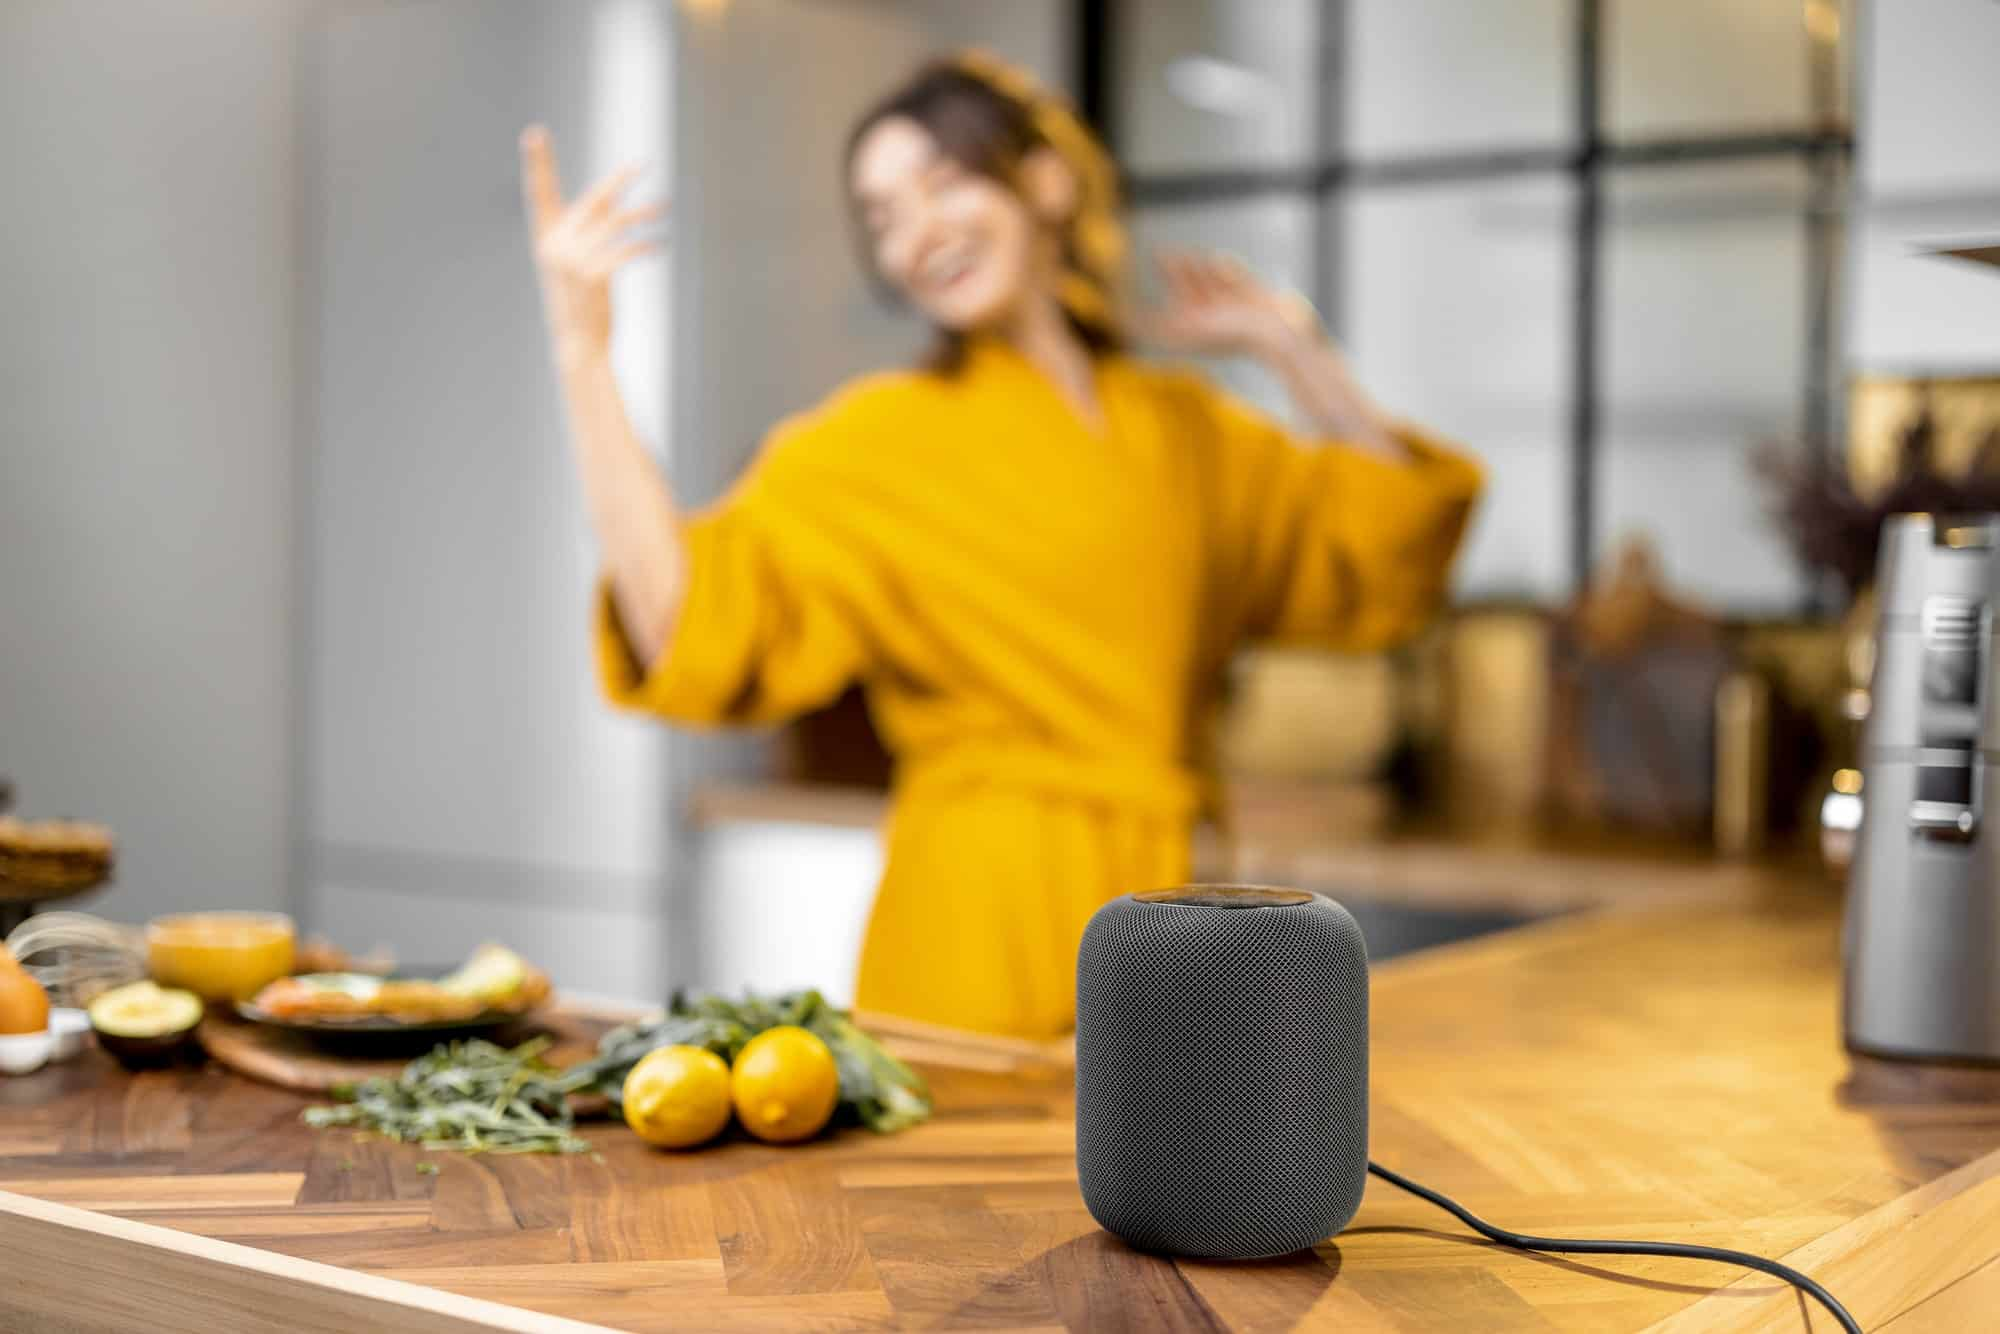 Can You Leave A Bluetooth Speaker Plugged In All The Time?